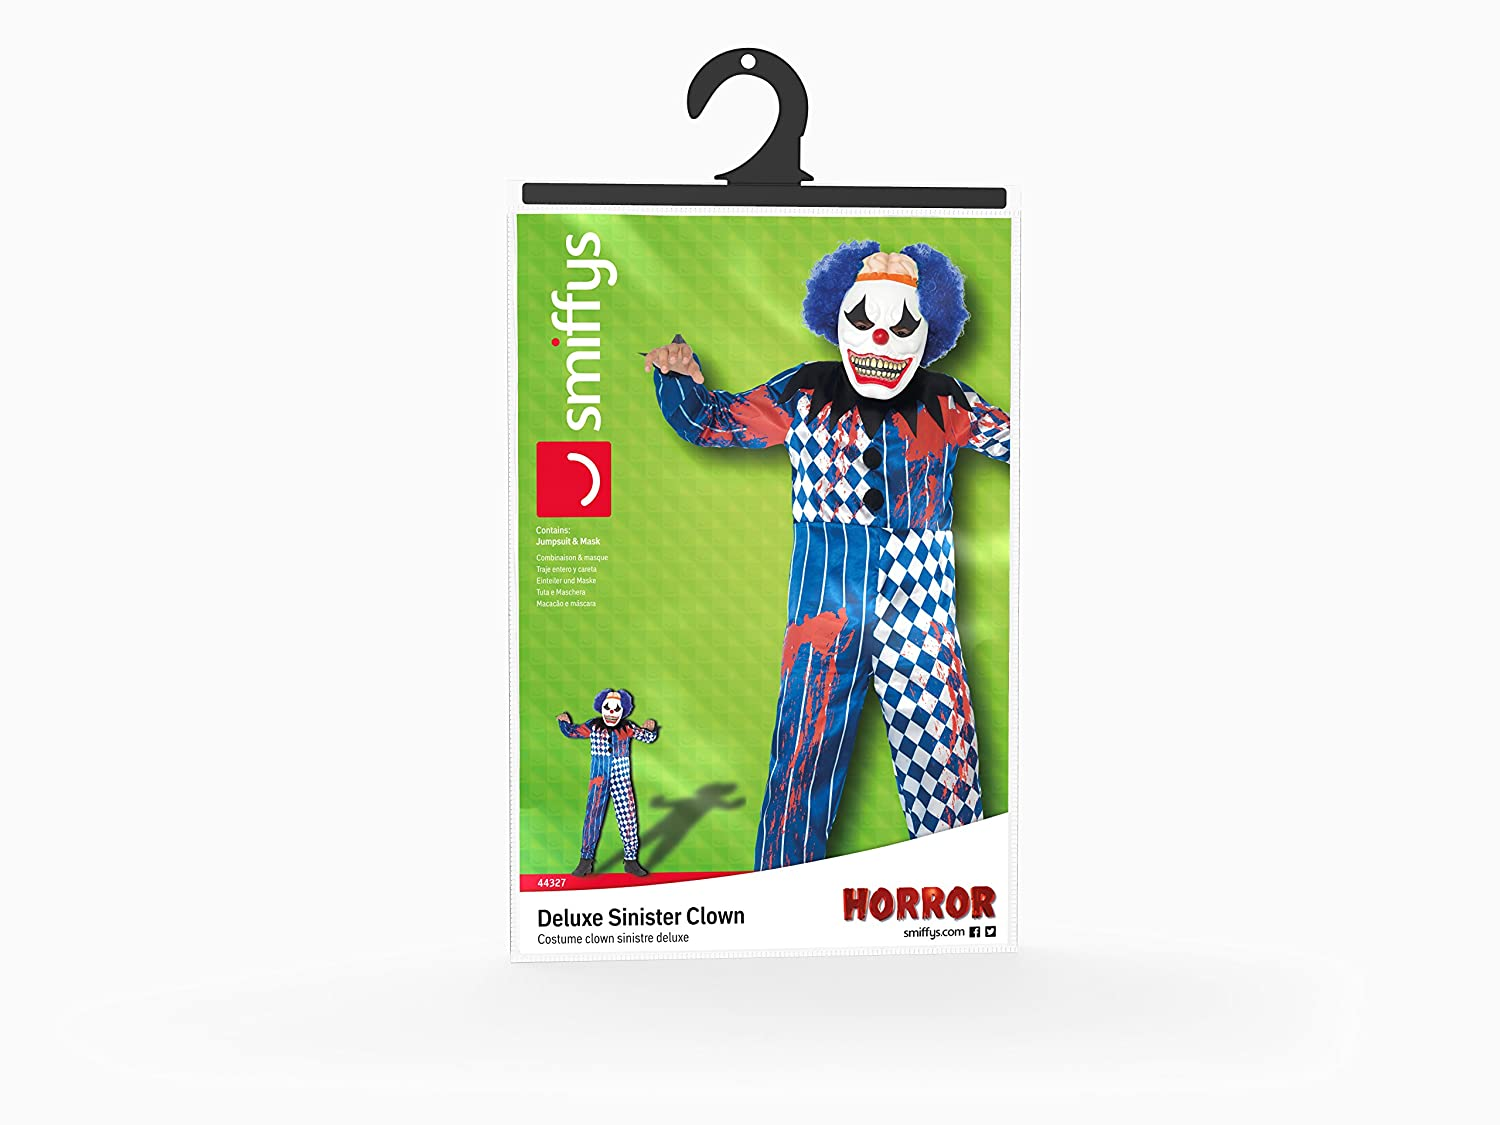 Amazon.com: Smiffys Deluxe Sinister Clown Costume: Clothing